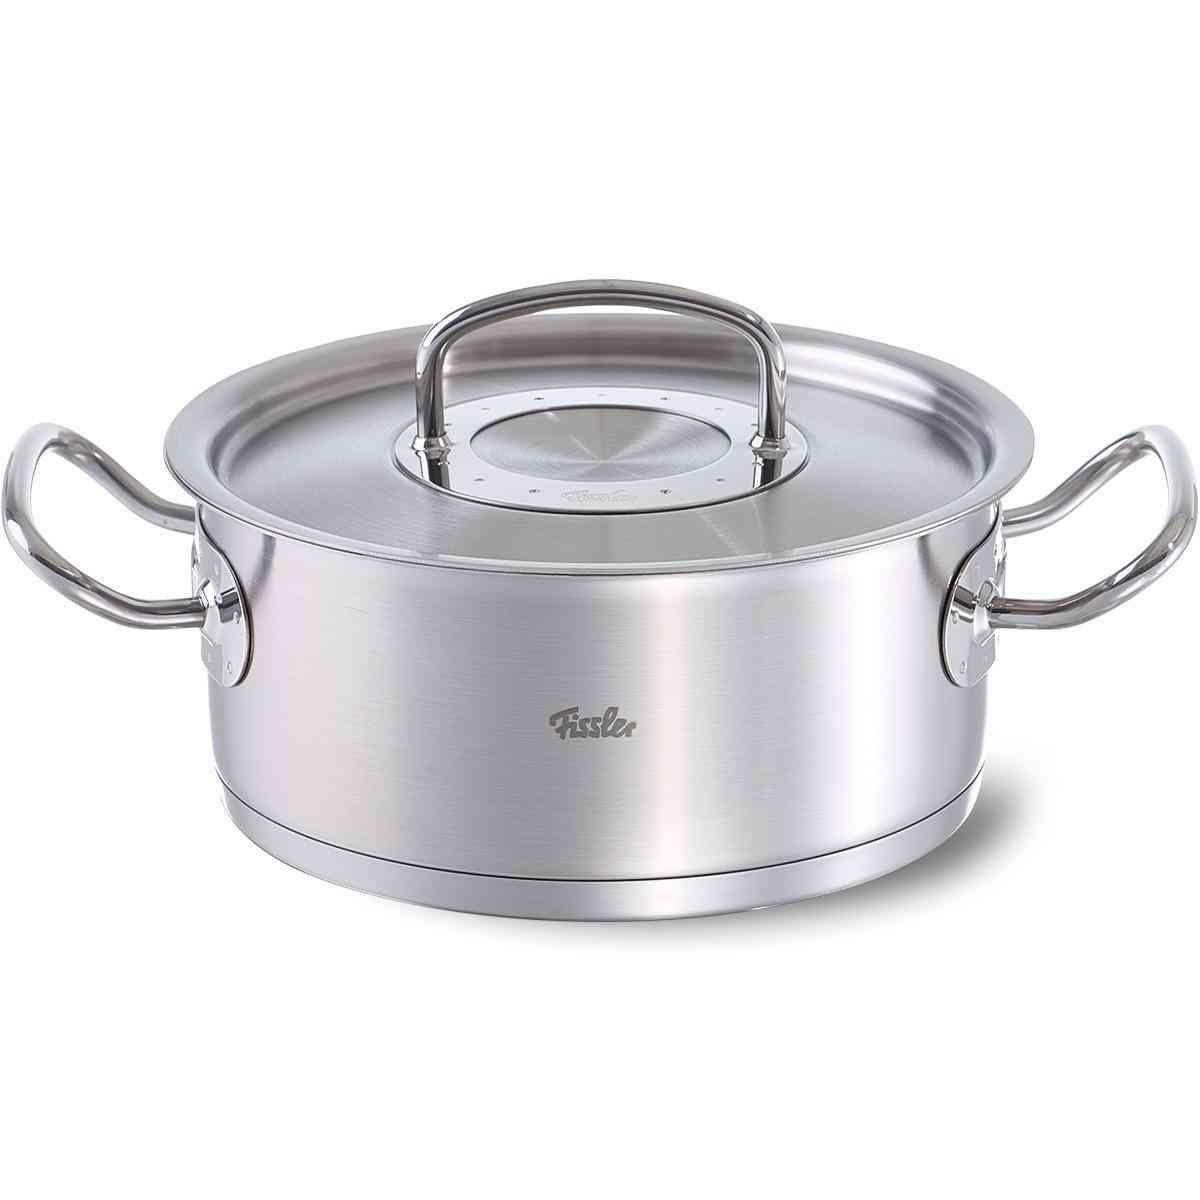 original-profi collection casserole 20 cm